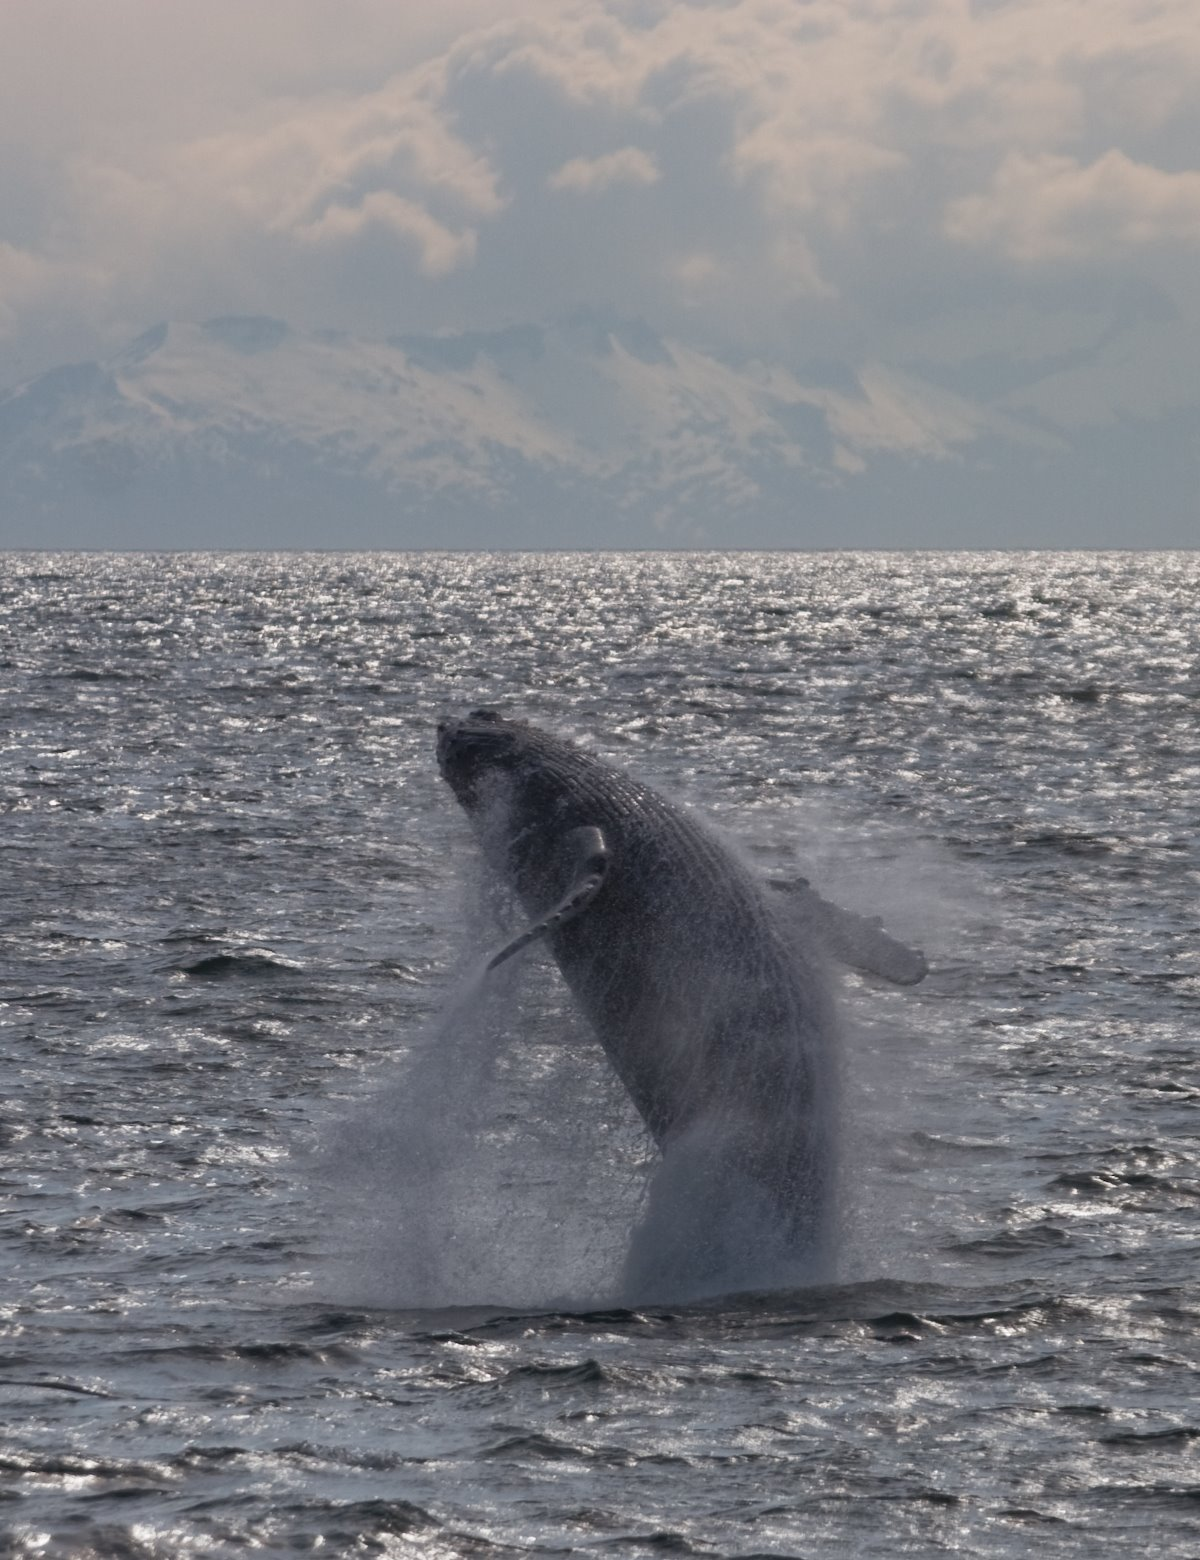 The powerful twisting arc of a breaching whale.